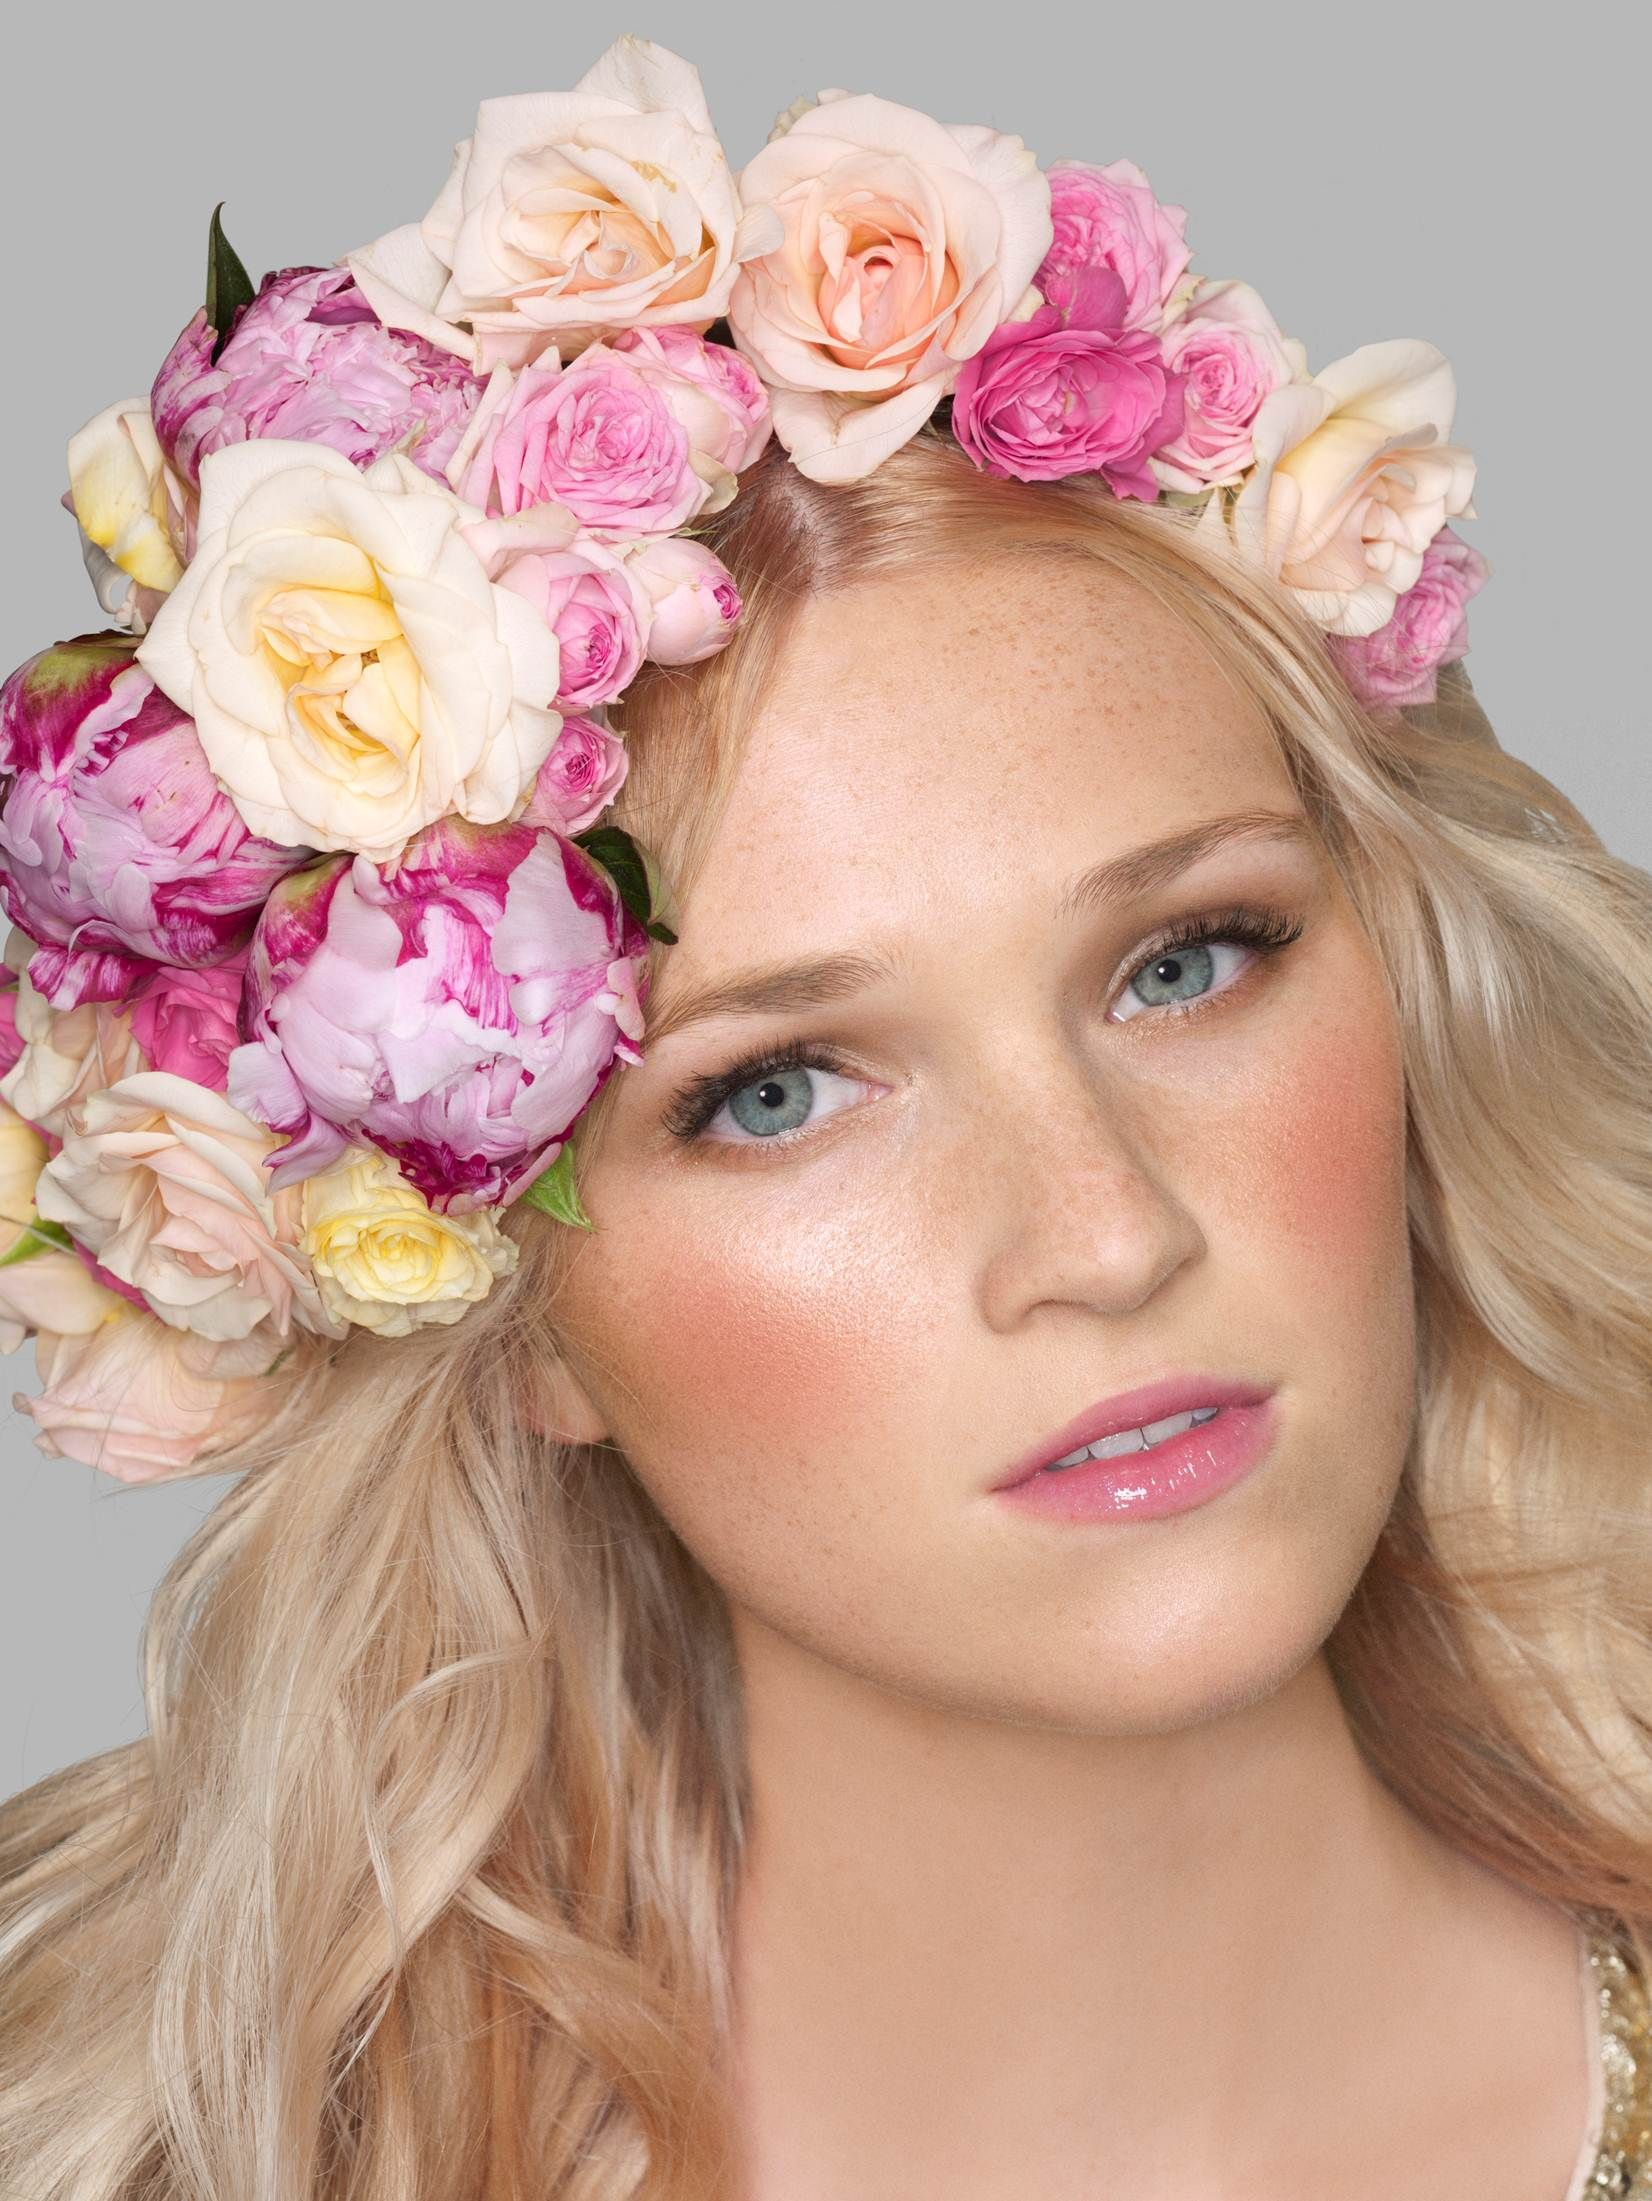 Hair flower crown by lucie doughty hair pinterest flower hair flower crown by lucie doughty izmirmasajfo